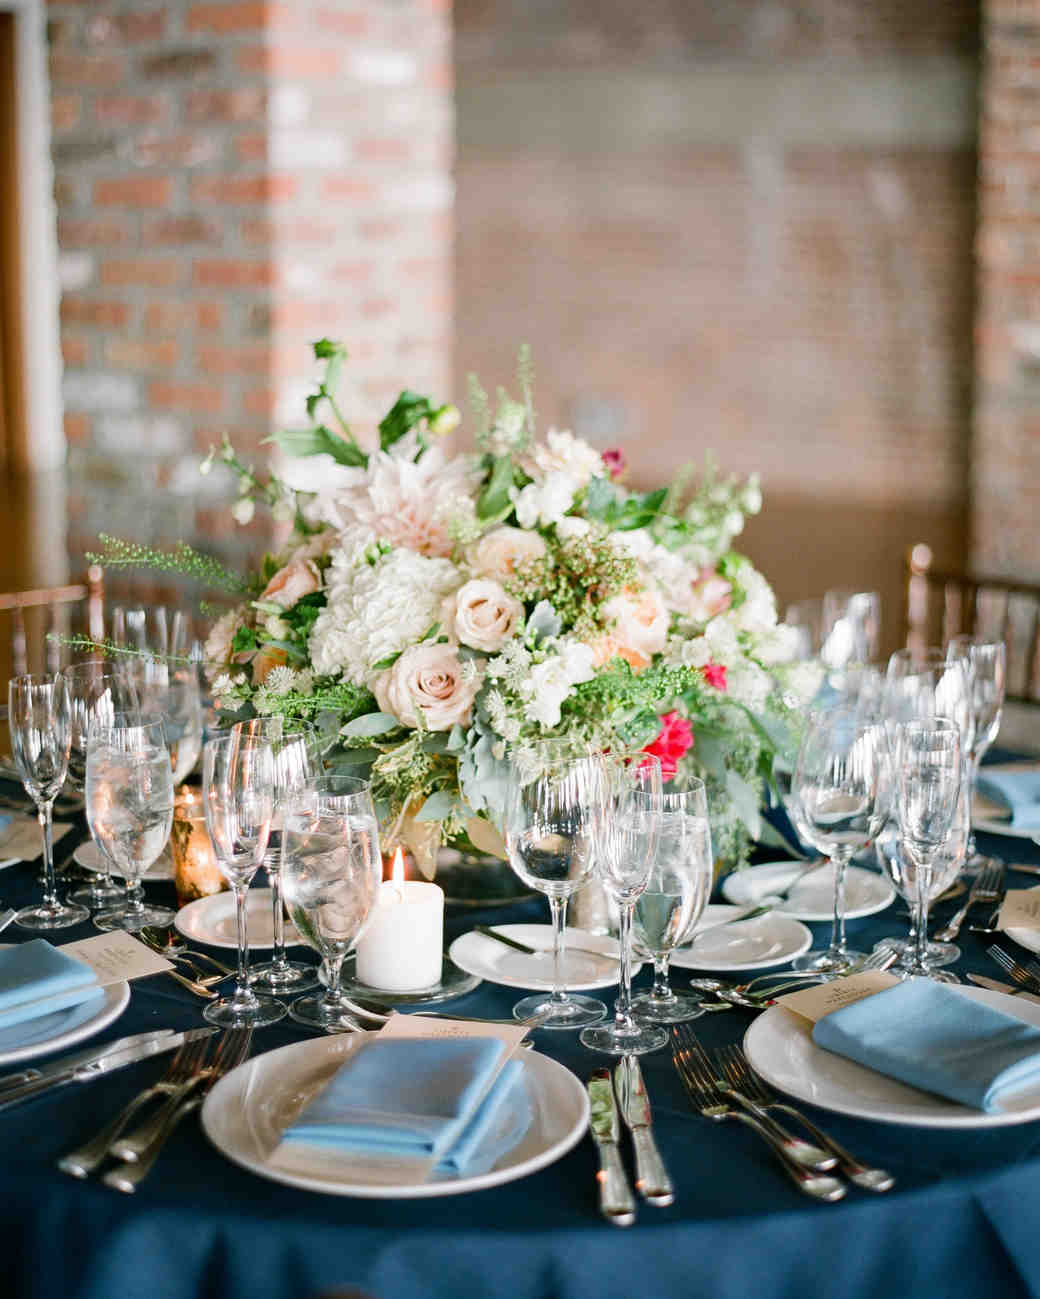 Wedding Flower Arrangements: 75 Great Wedding Centerpieces